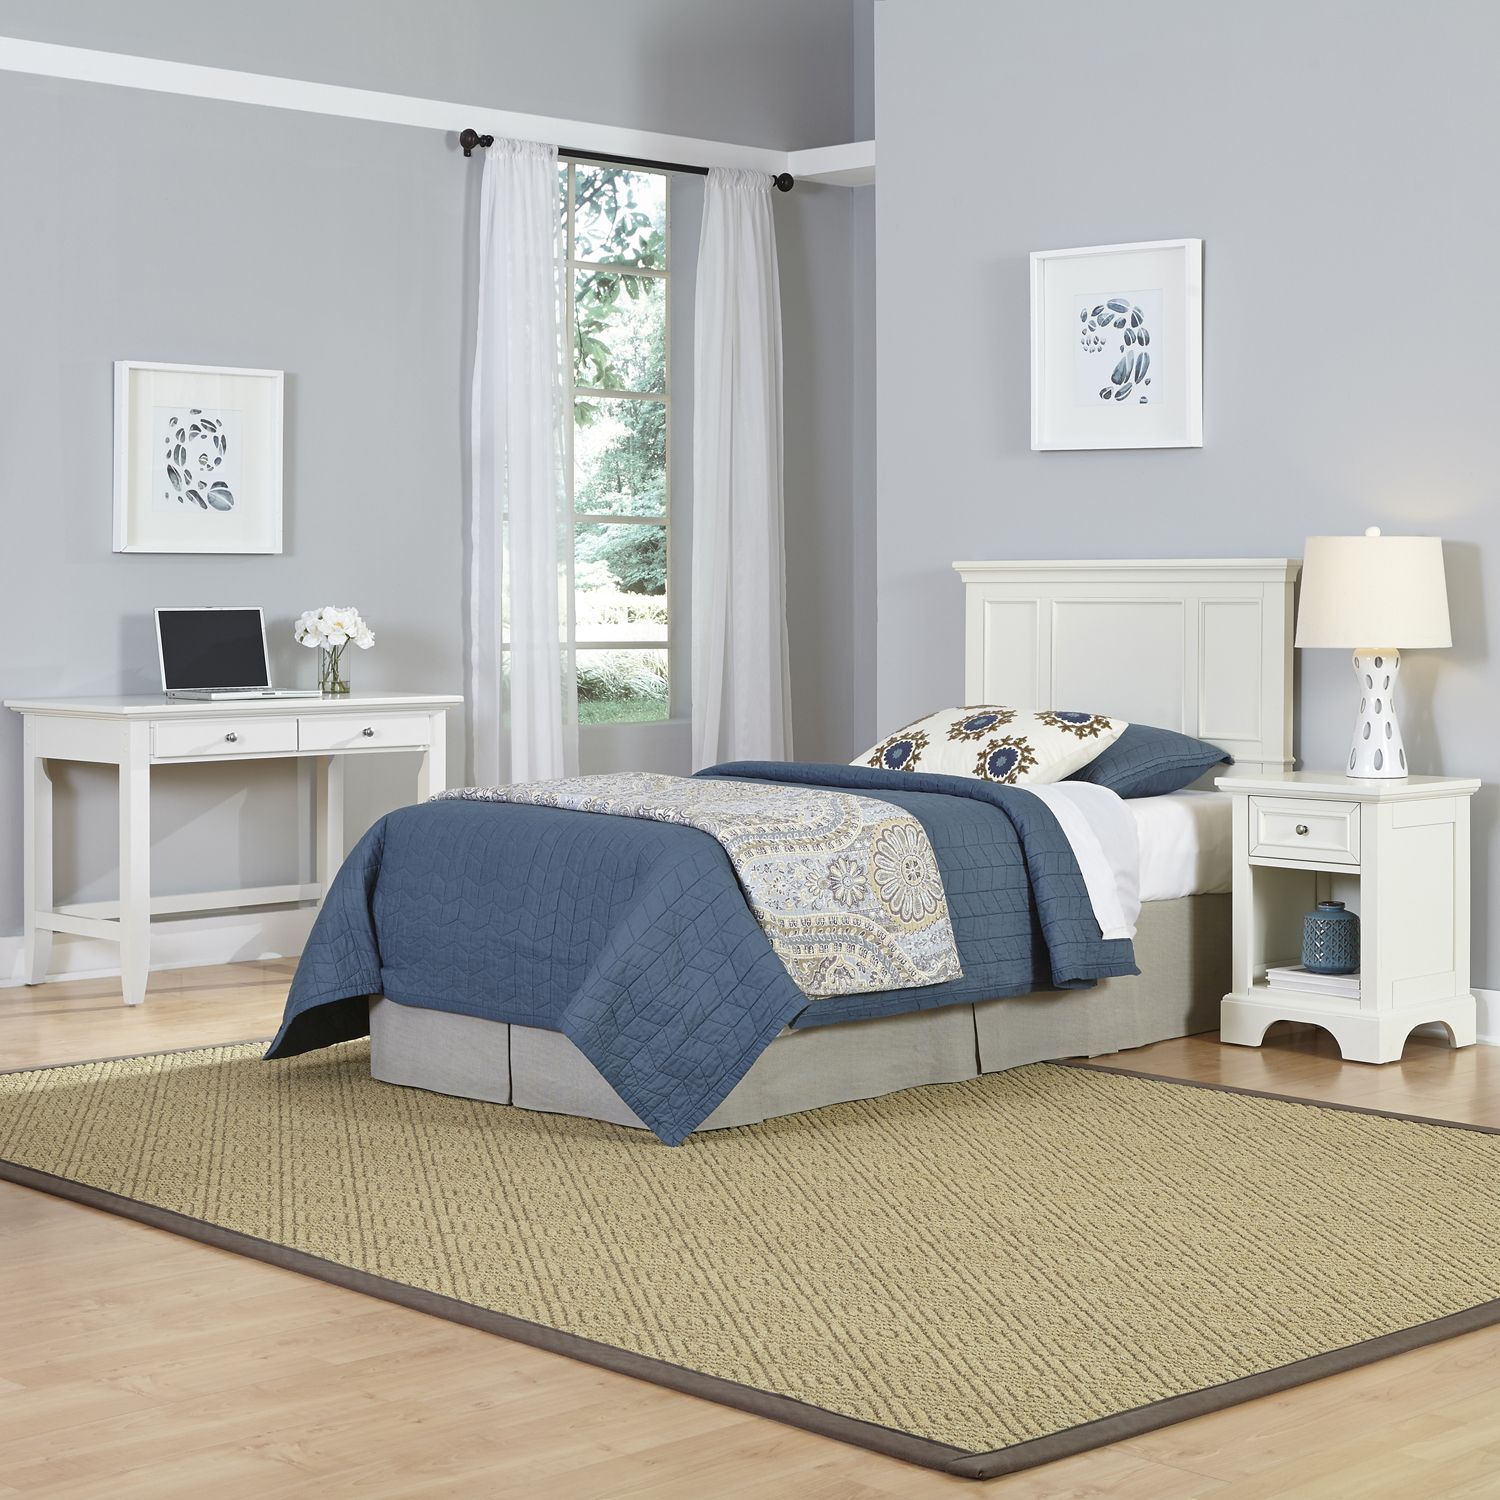 Fabulous Home Styles piece Naples Twin Bedroom Set